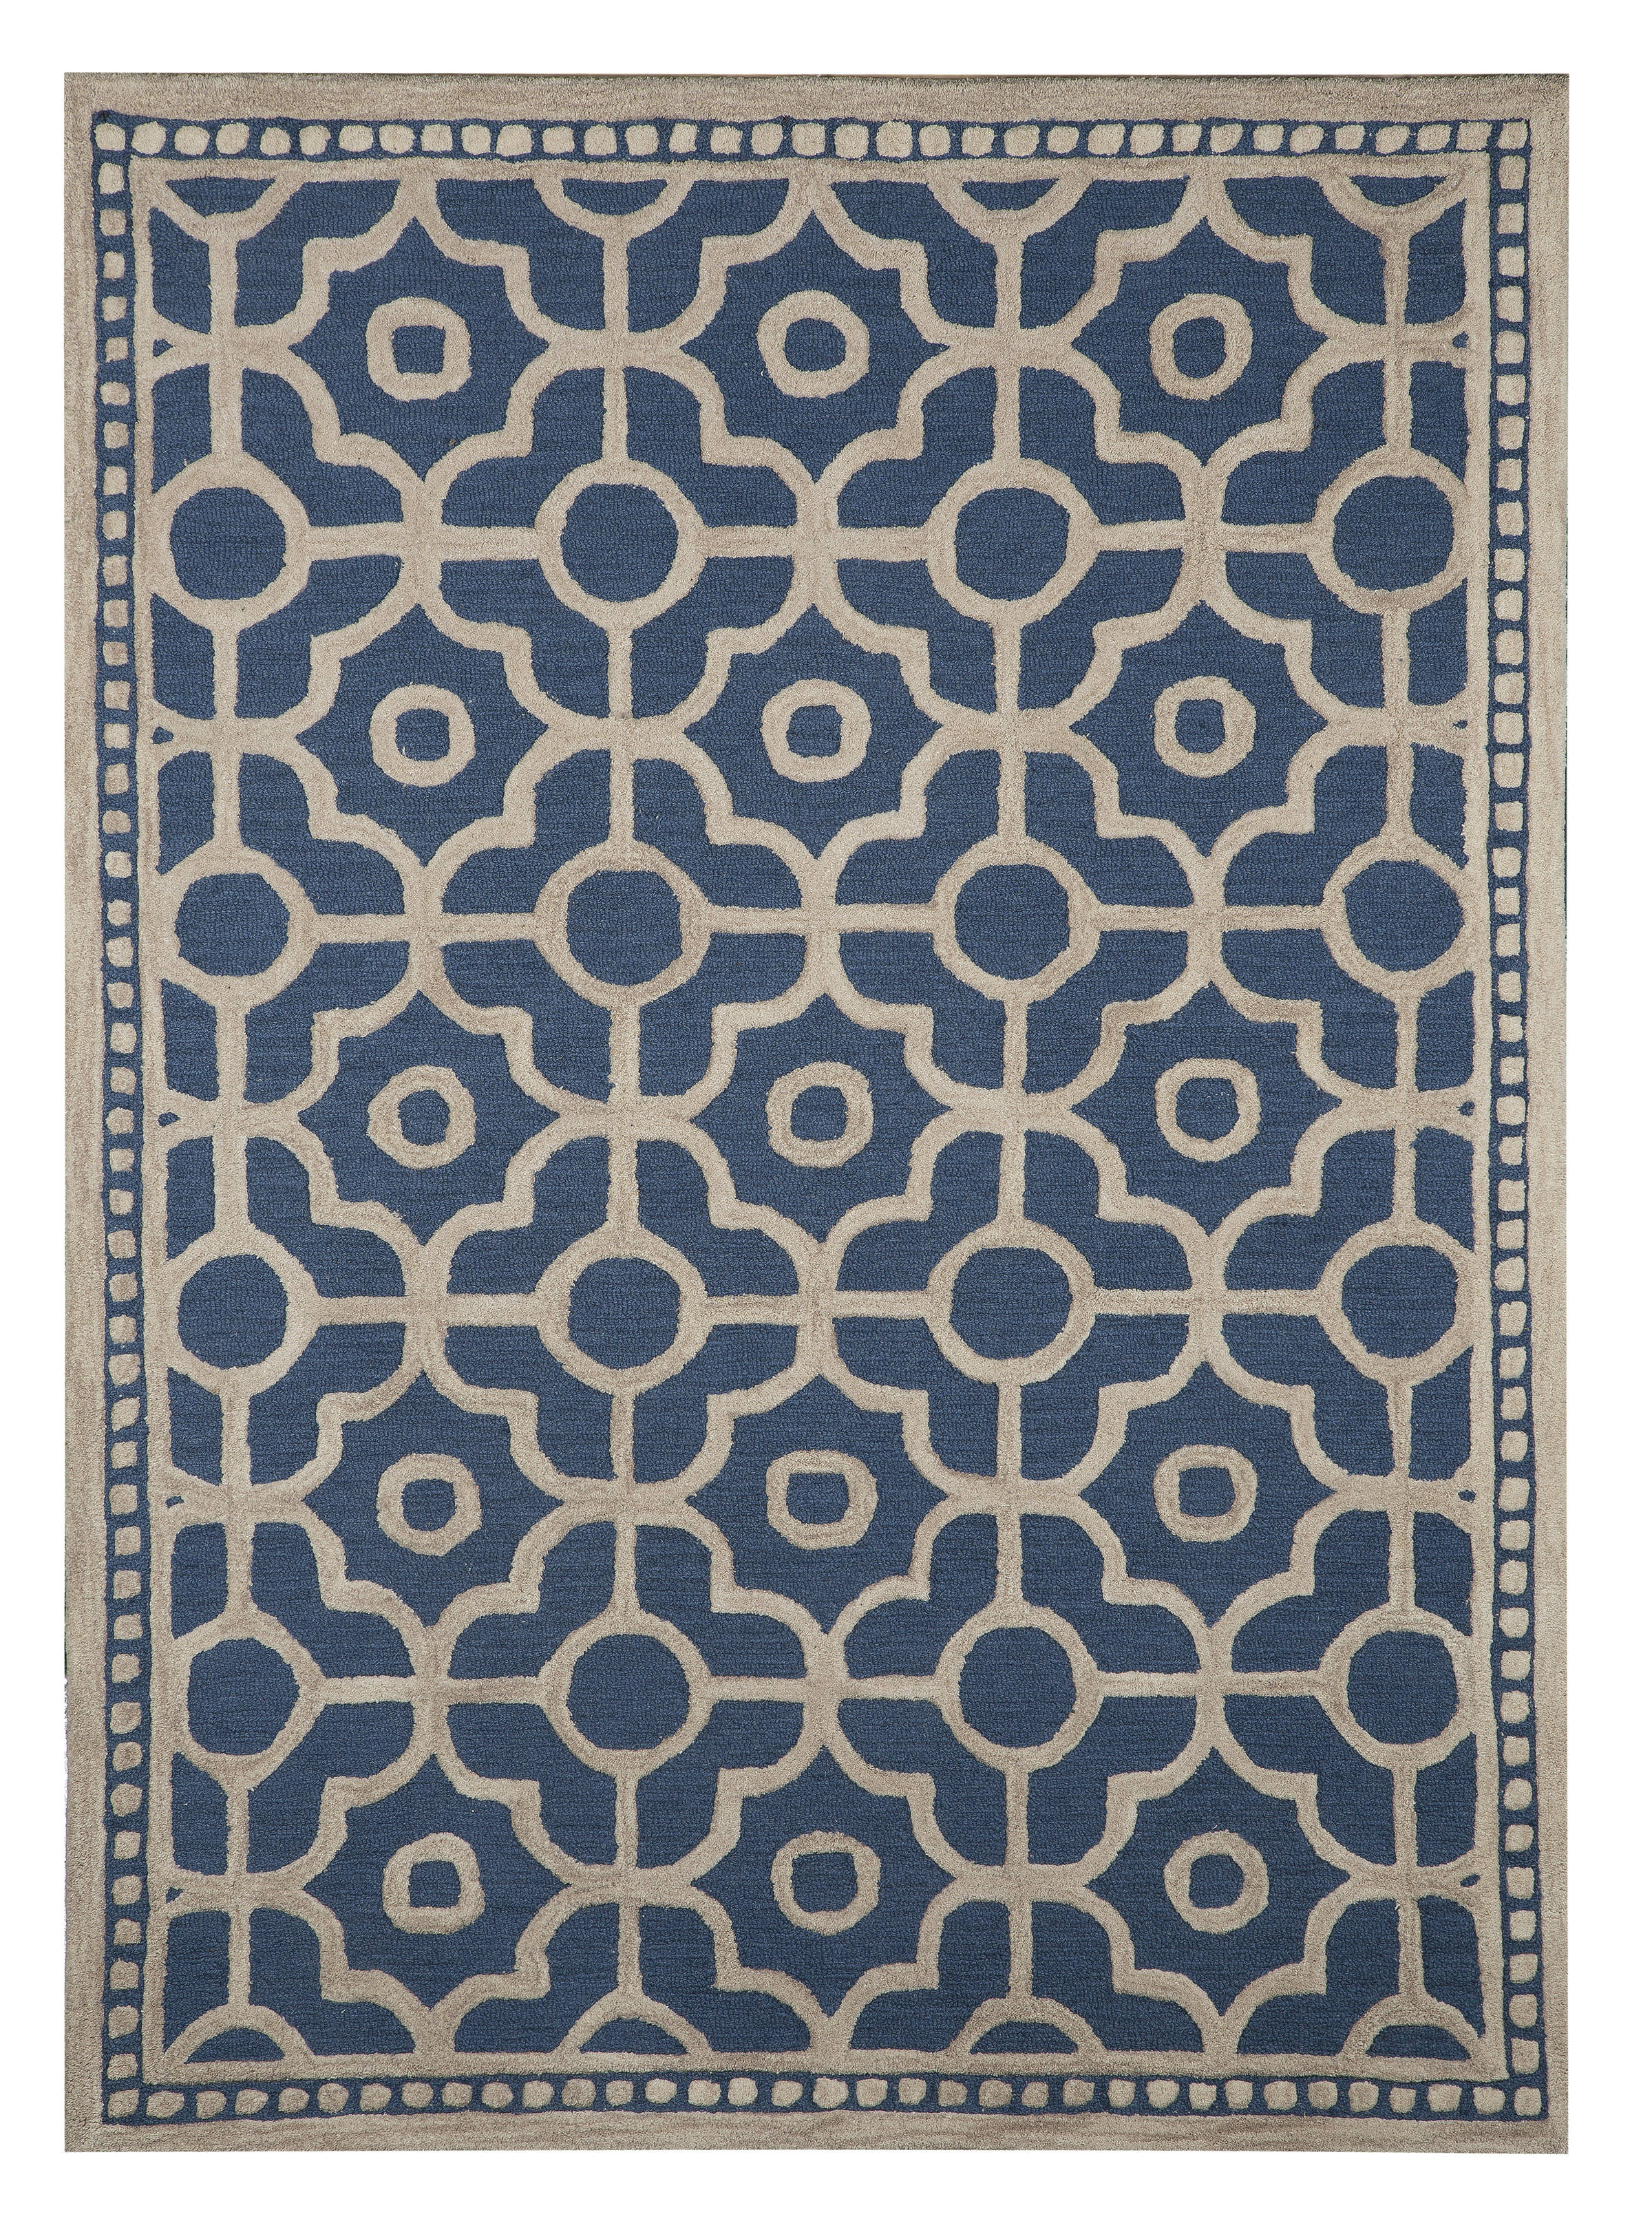 Ashley Furniture Bisbee Blue Rugs The Classy Home